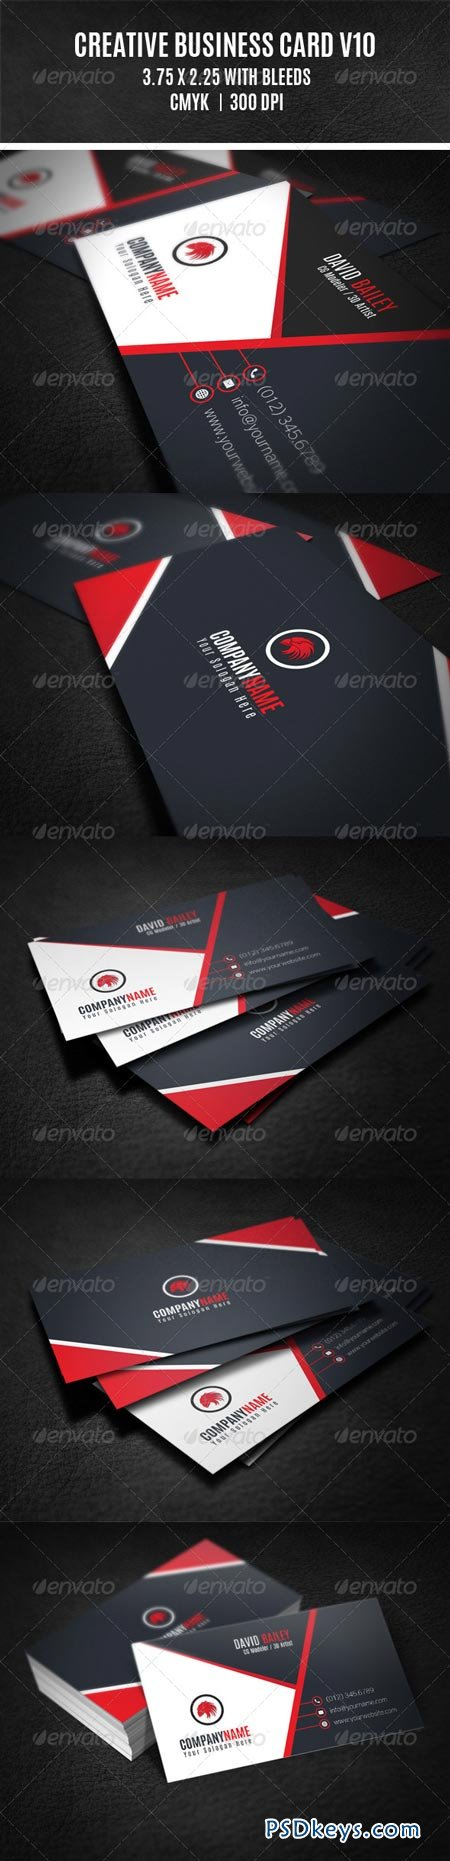 Creative Business Card V10 8659234